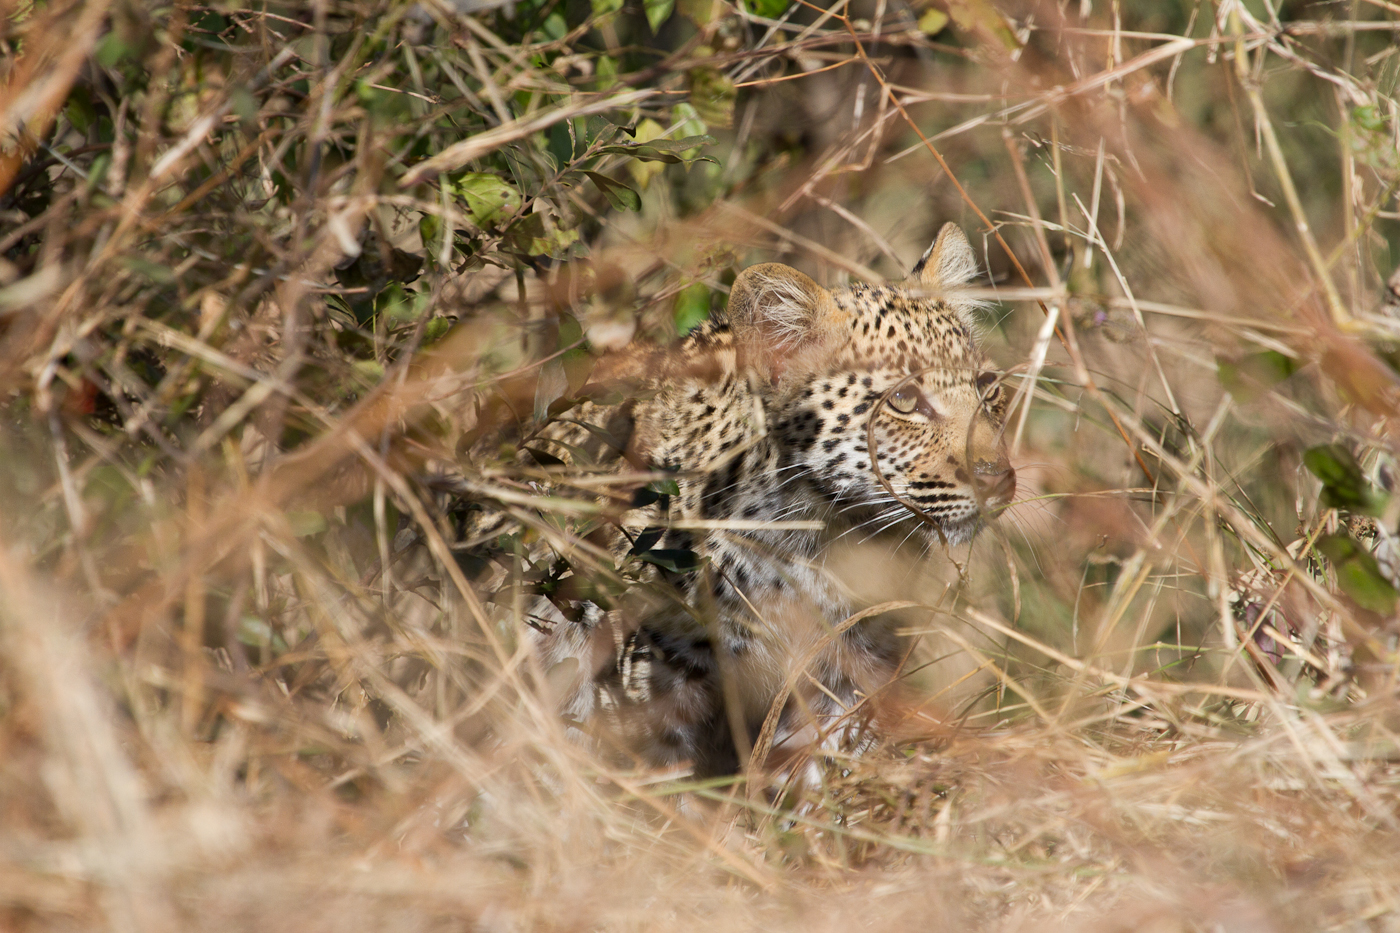 A young leopard waits to see if the coast is clear.